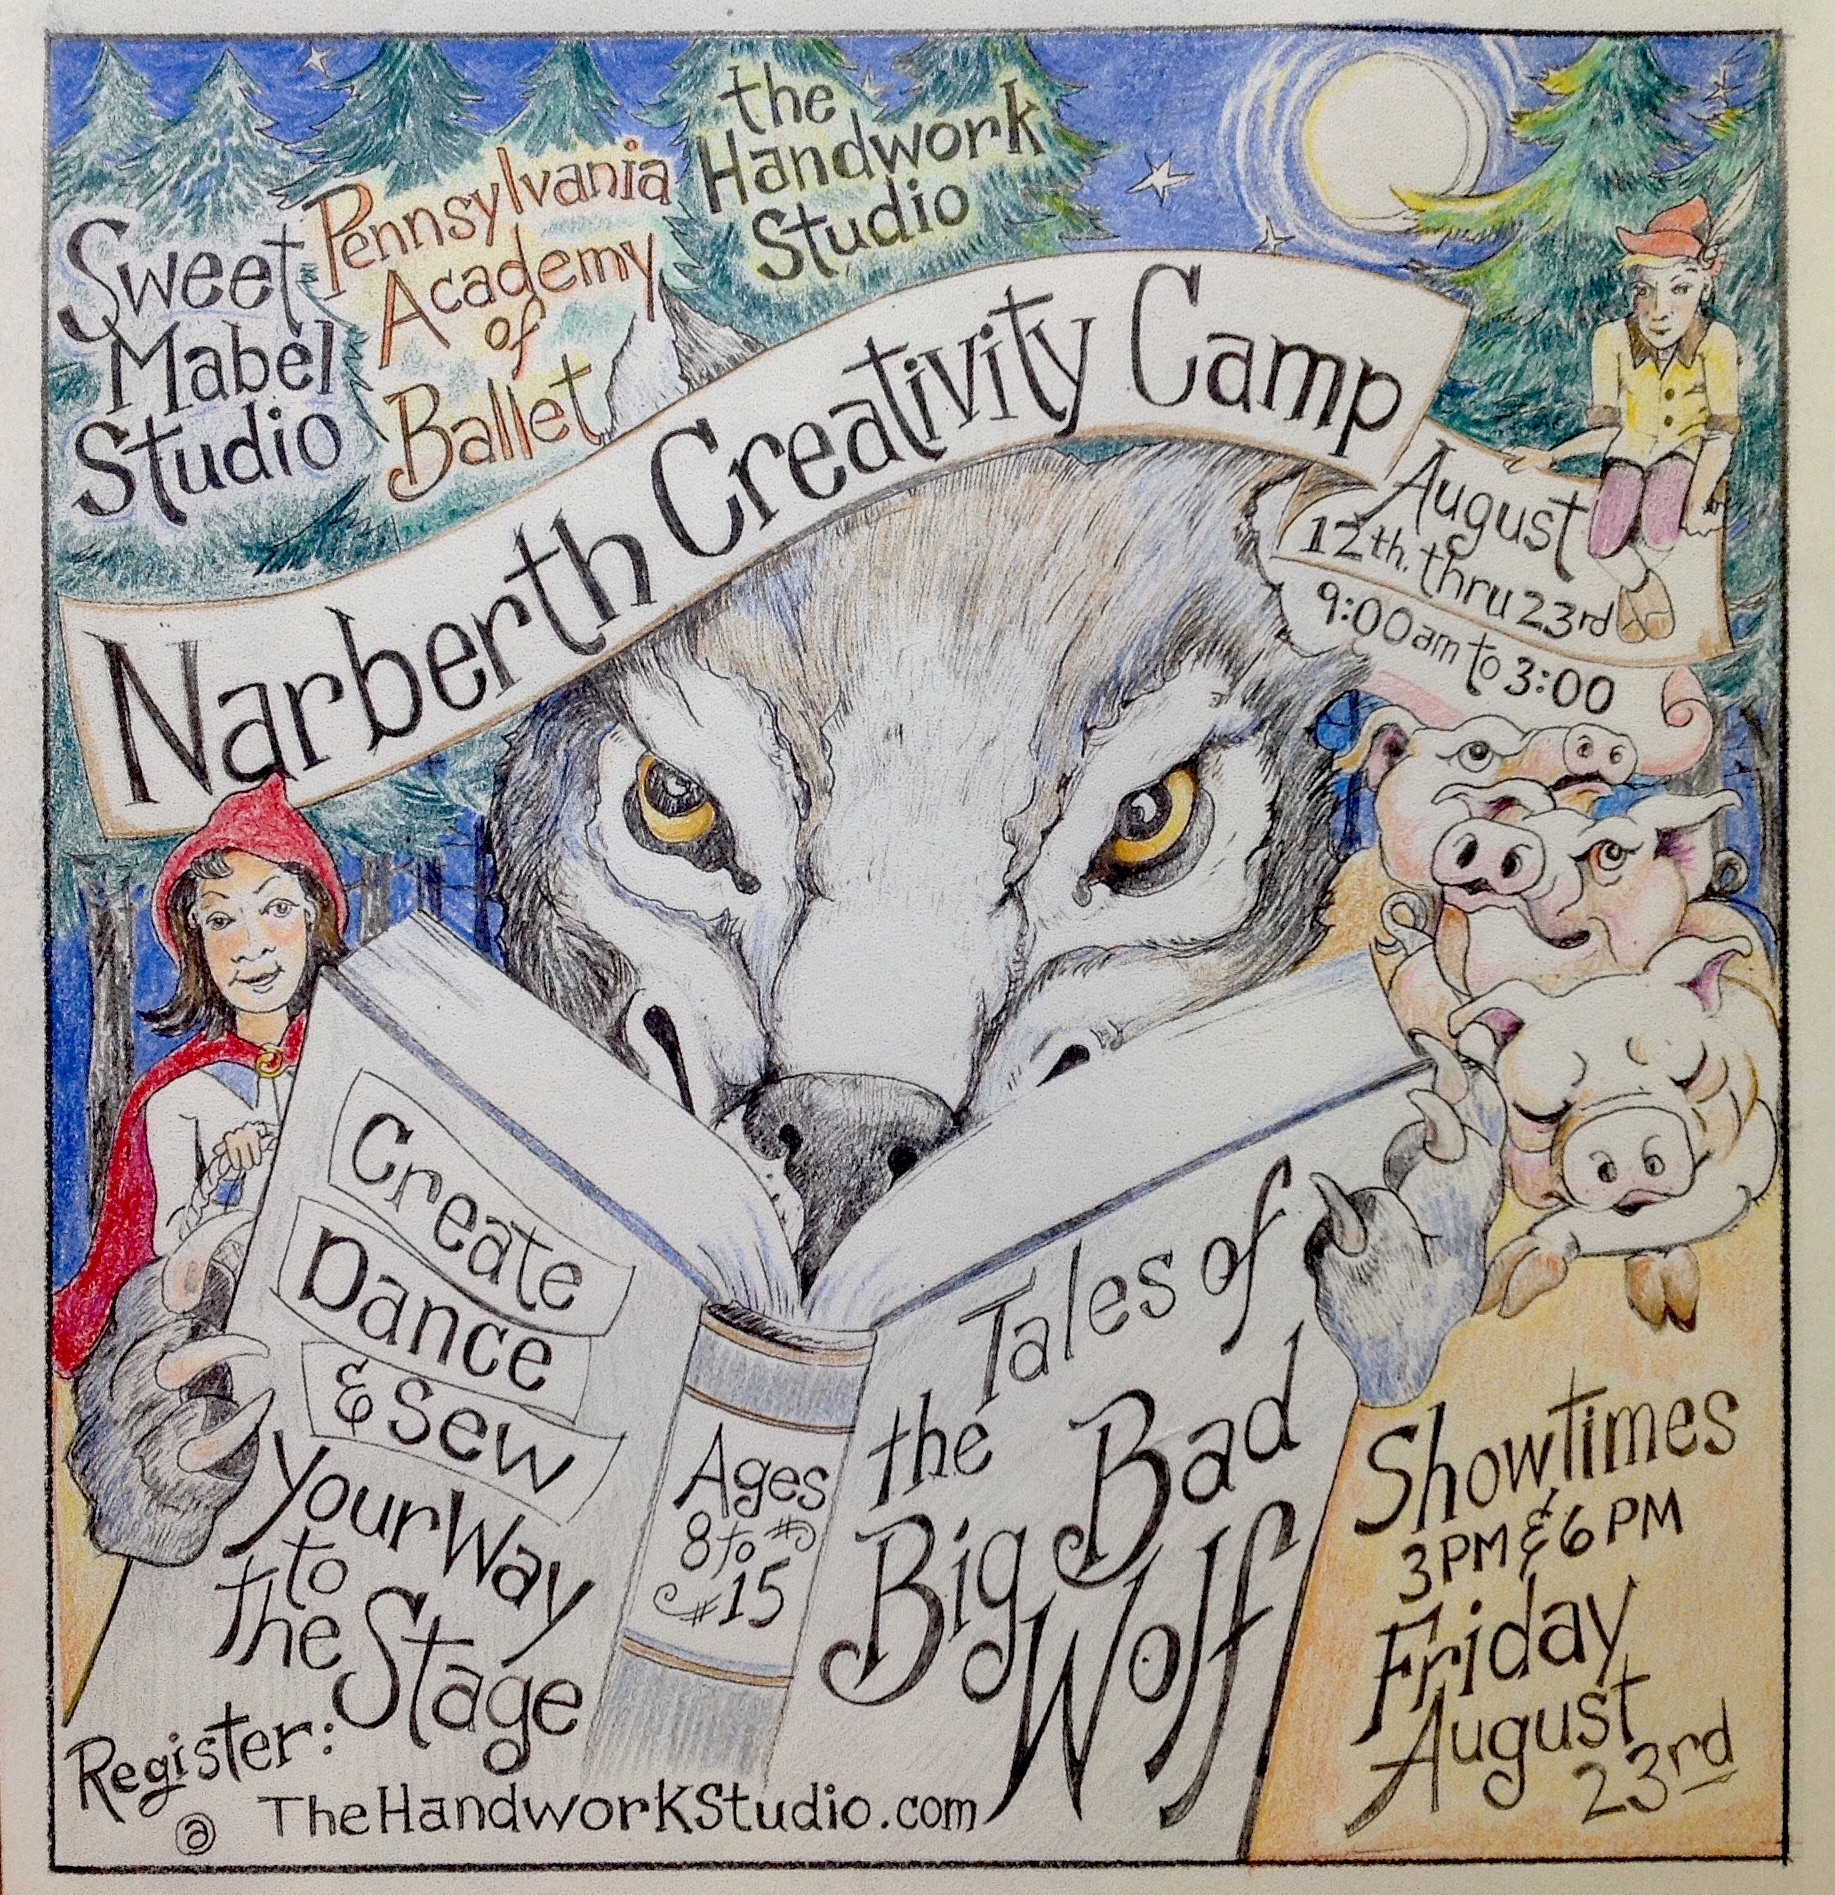 Narberth Creativity Camp, 2-week session 8/12-8/23, 9am-3pm @ Sweet Mabel Studio